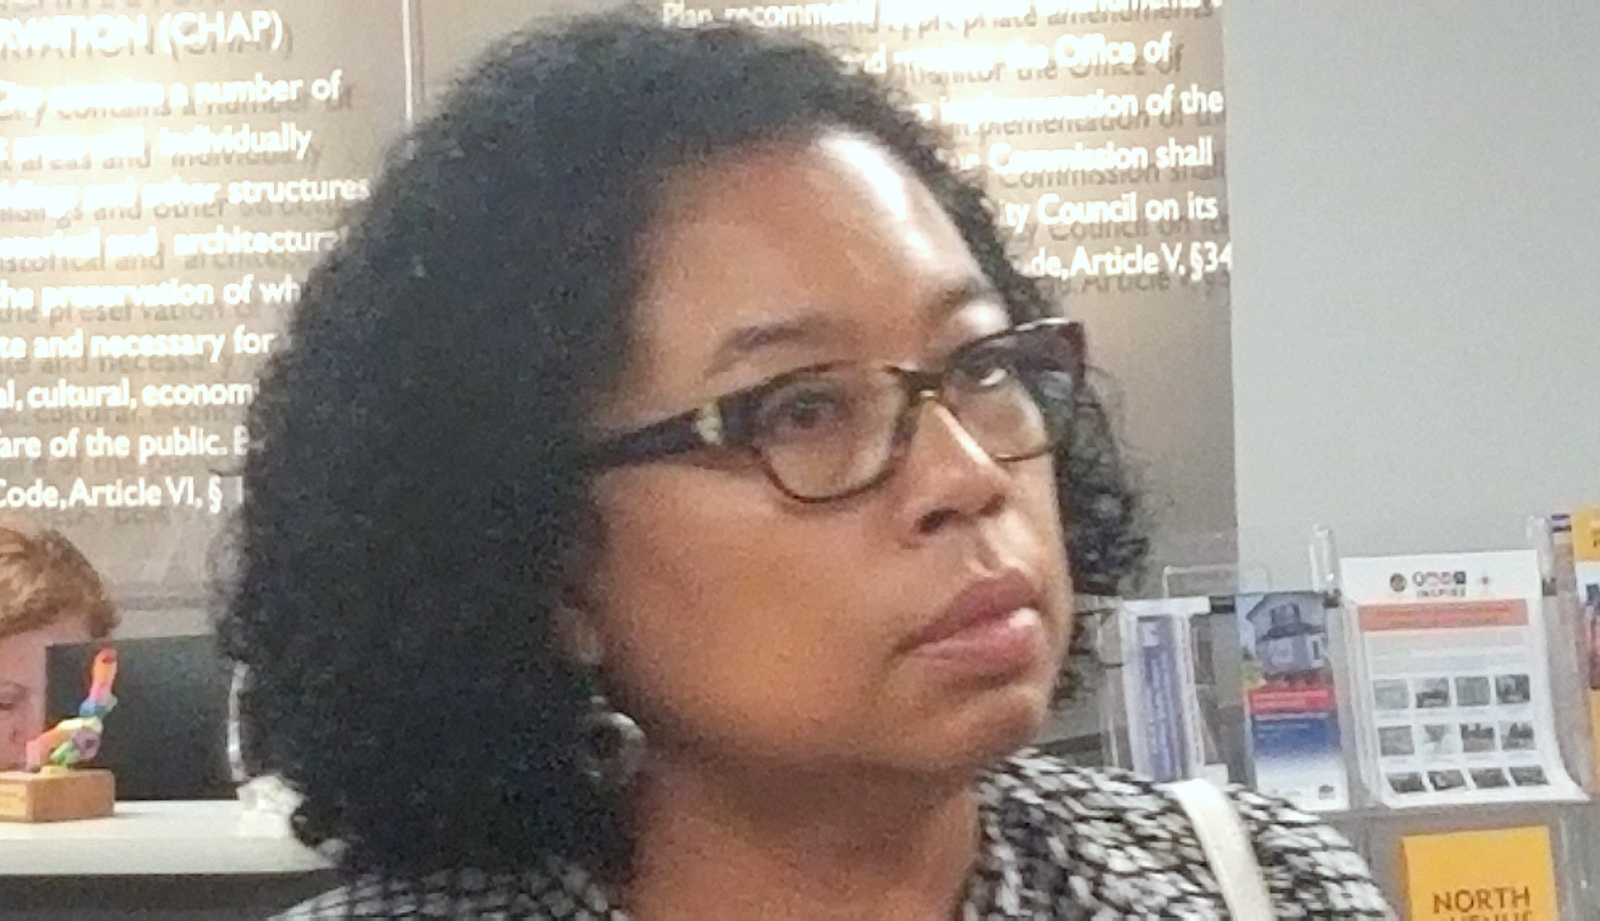 Katherine Jennings has long refused to meet with the Woodberry Community Association, but she showed up yesterday at the UDAAP meeting. (Ed Gunts)